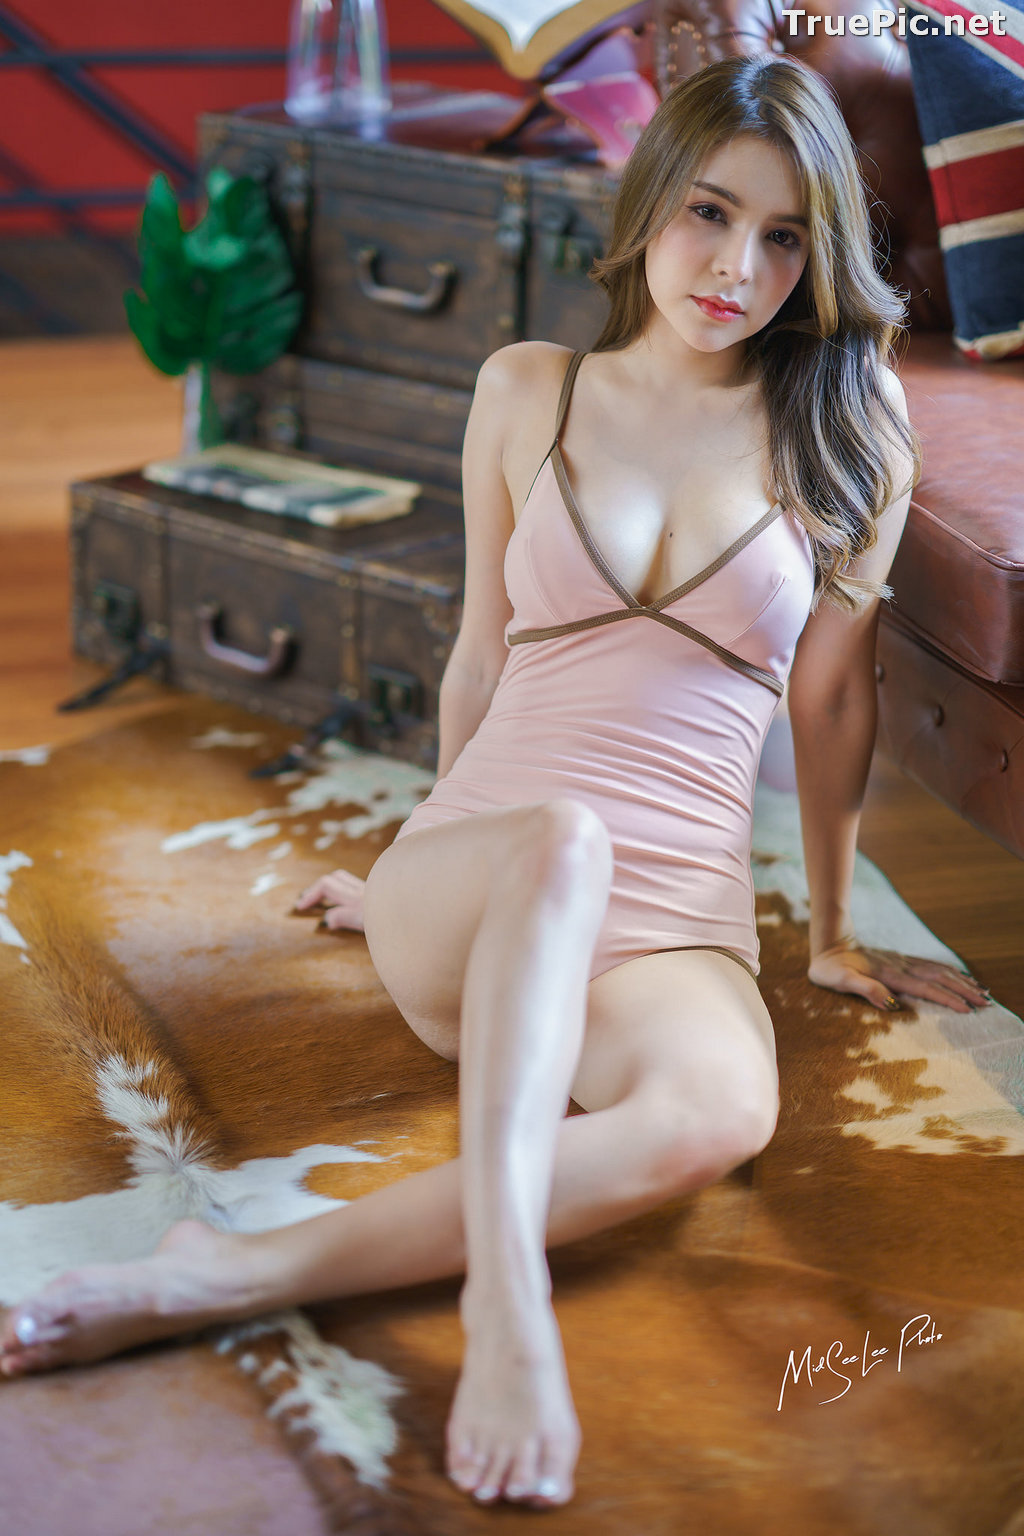 Image Thailand Model - Soithip Palwongpaisal - Sexy and Cute Monokini - TruePic.net - Picture-3